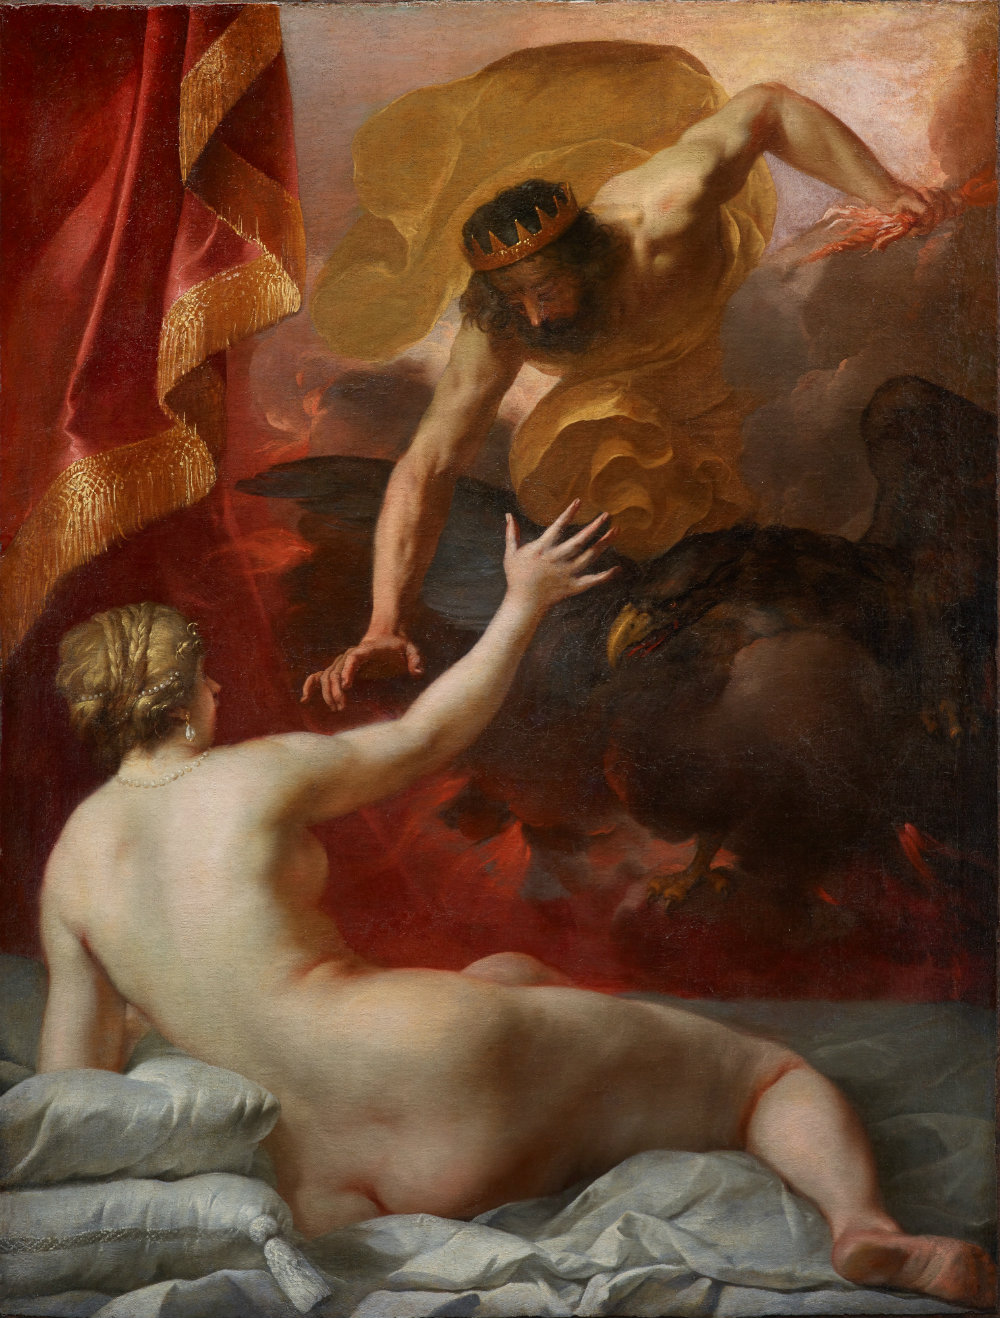 Jacques Blanchard, SMALL Zeus and Semele, c